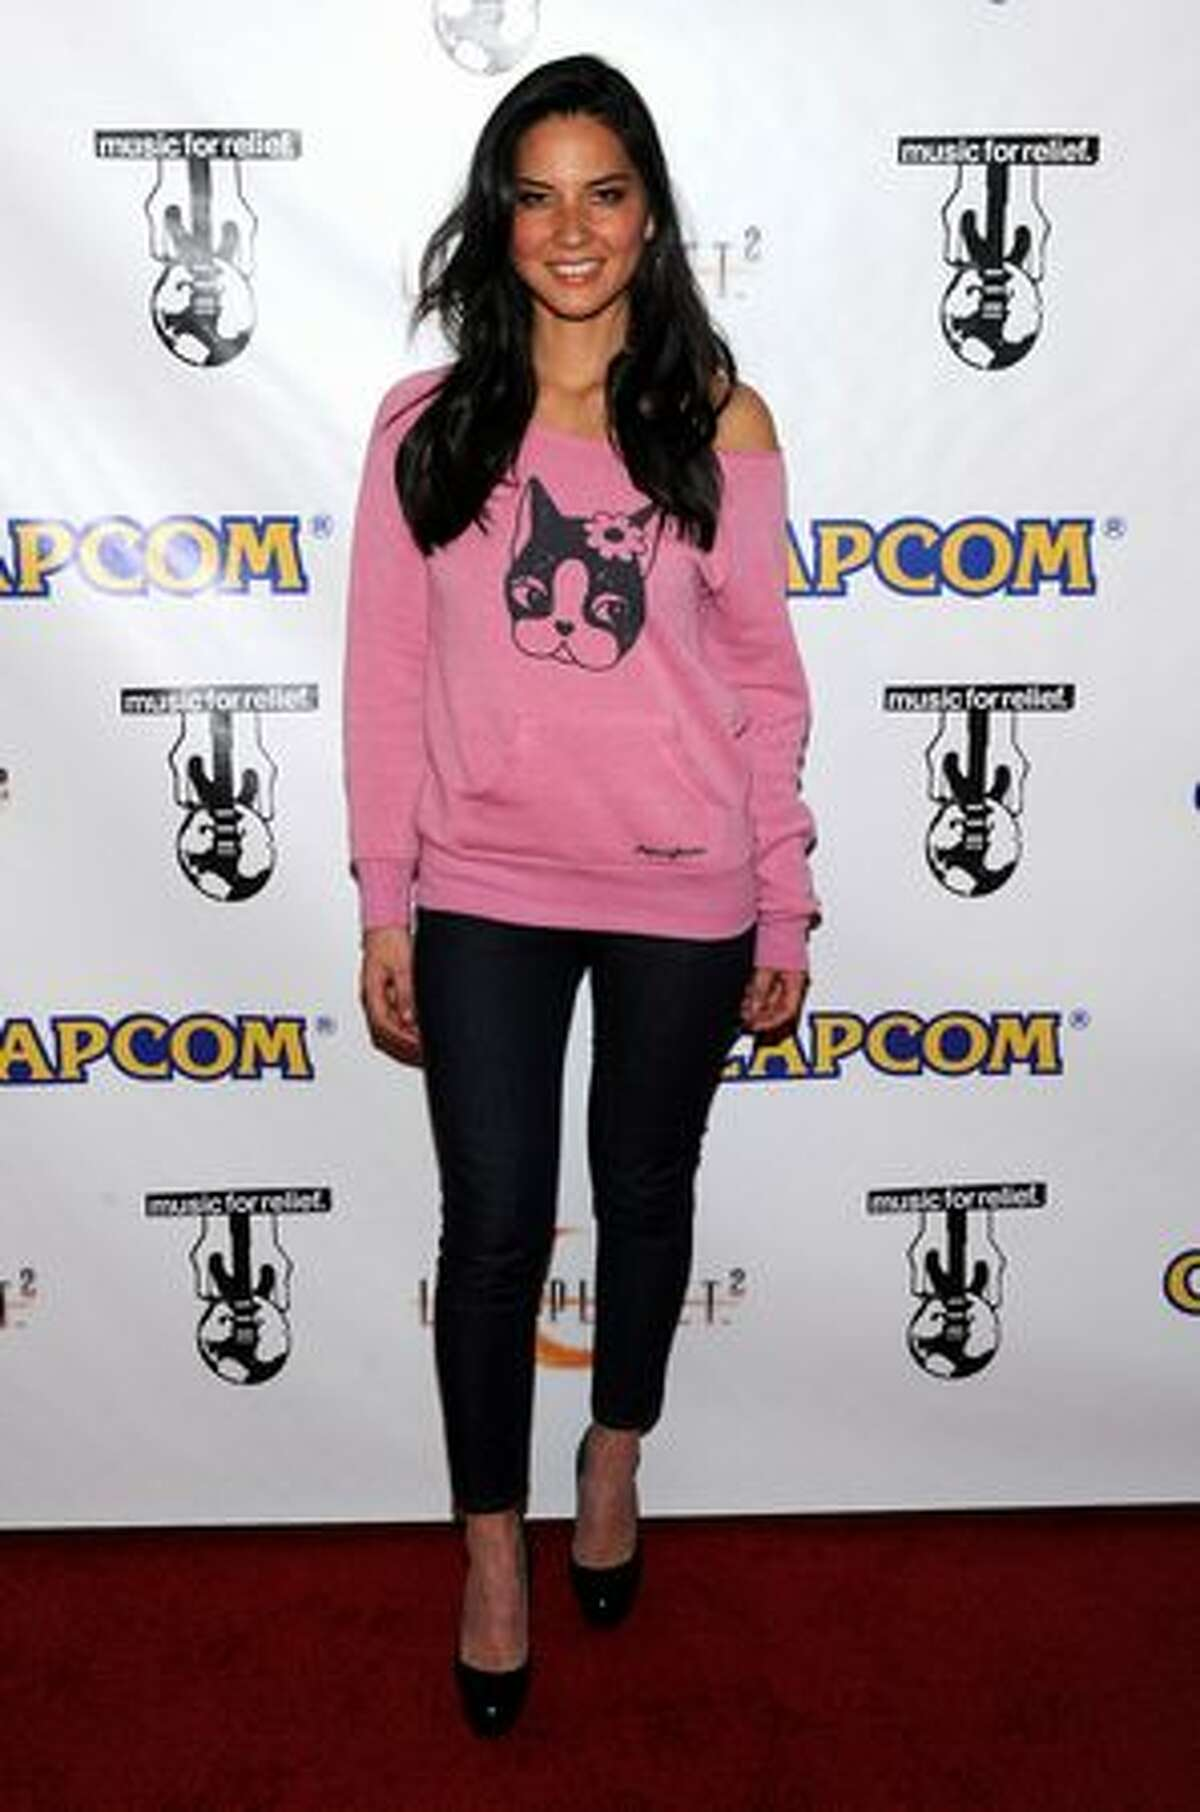 Olivia Munn arrives at the launch party of Capcom's